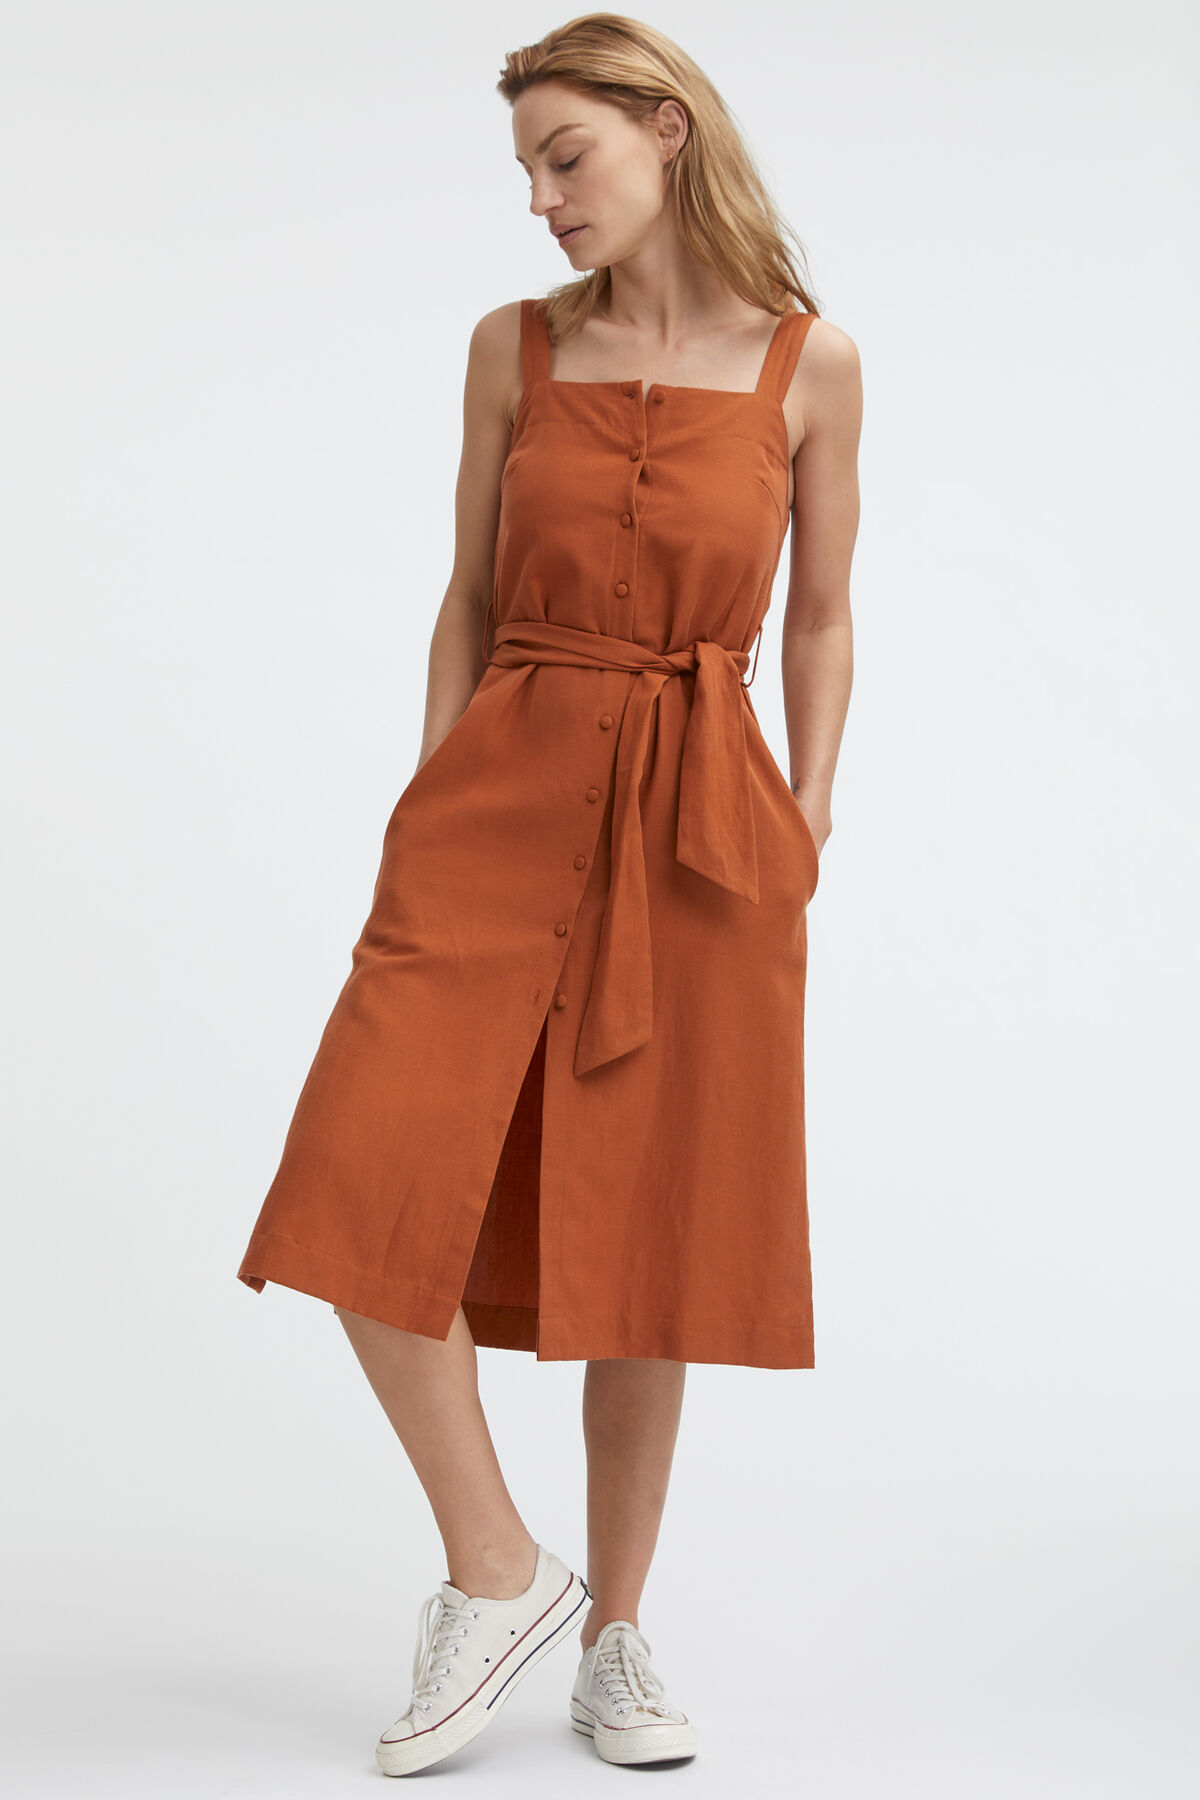 HIGHMEAD DRESS Linen & Poplin Blend - Midi